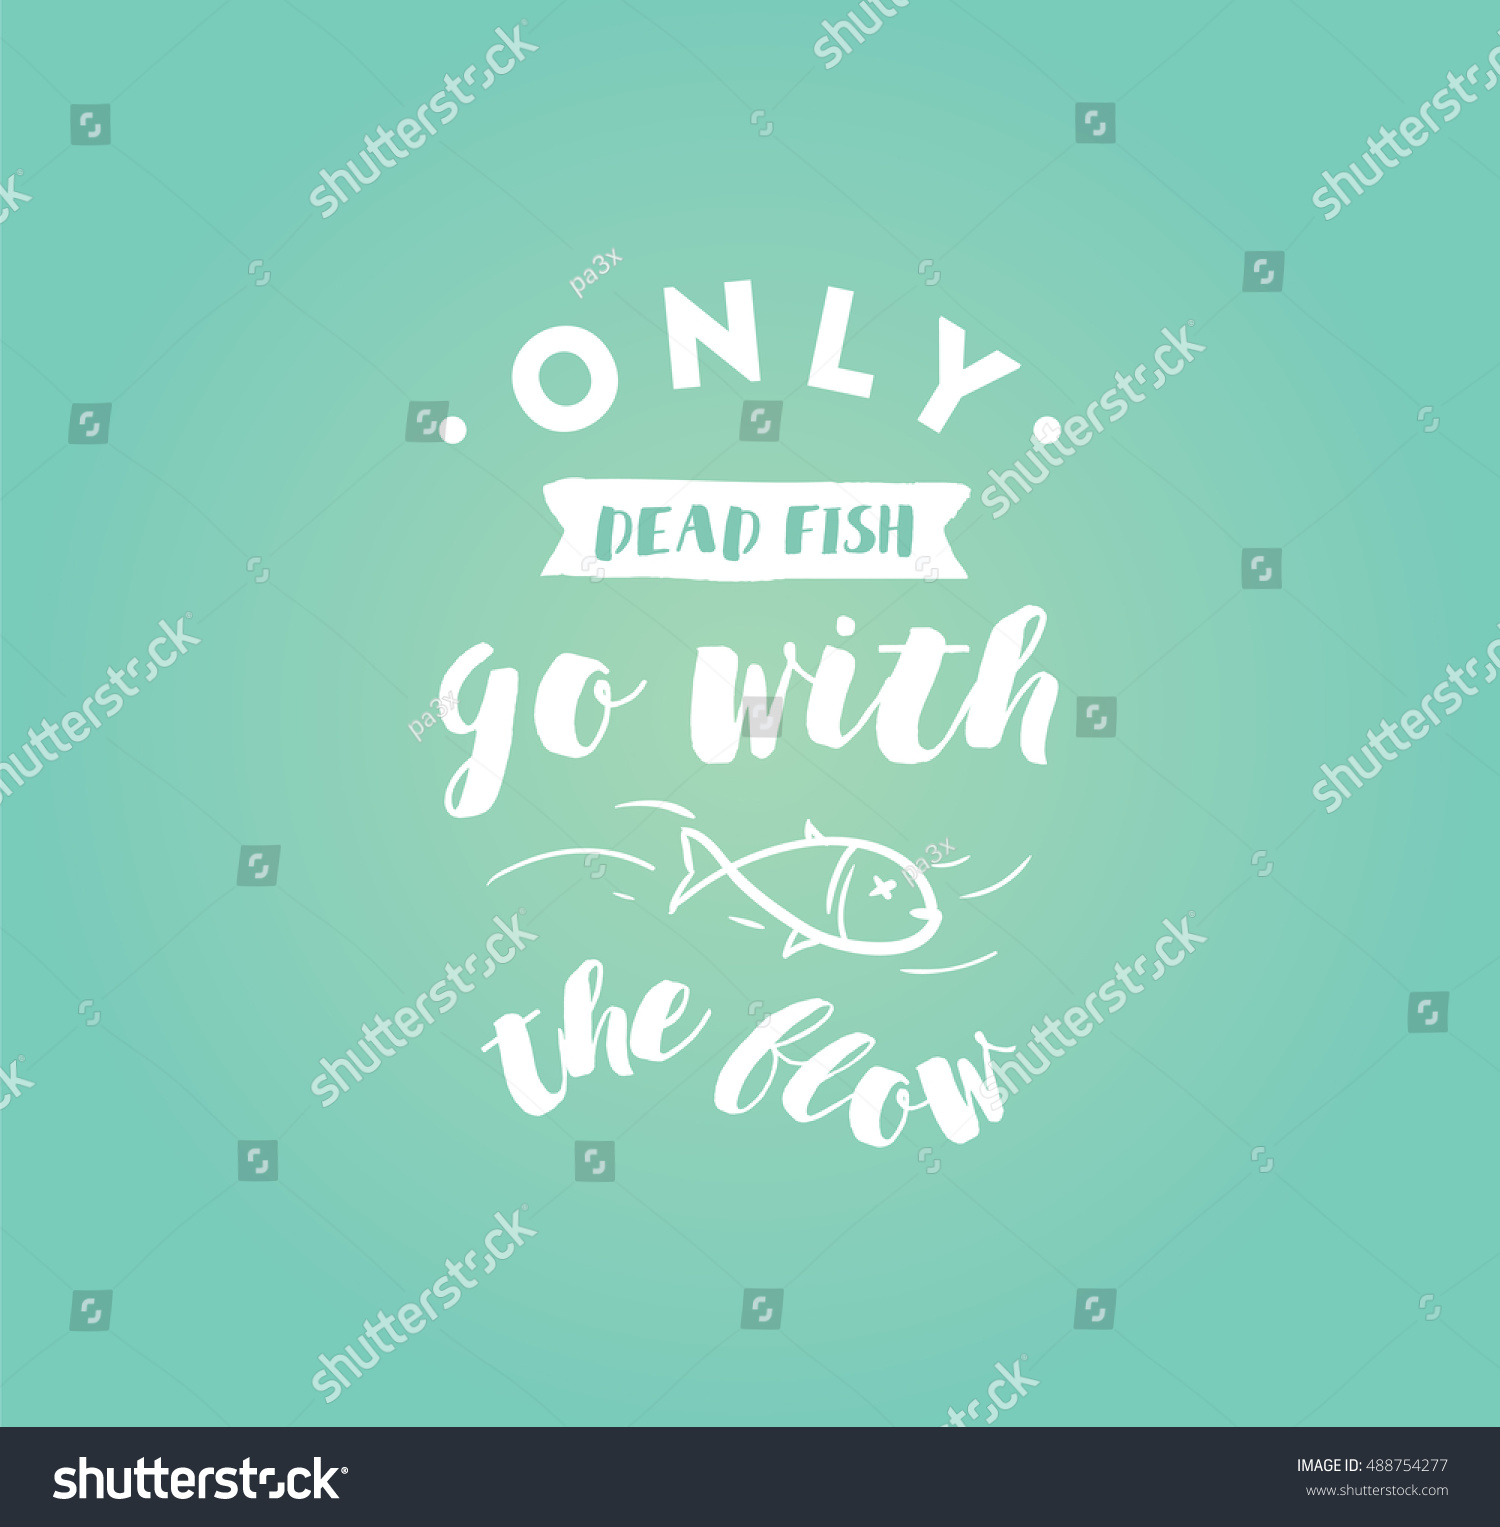 Go With The Flow Quotes Only Dead Fish Go Flow Inspirational Stock Vector 488754277